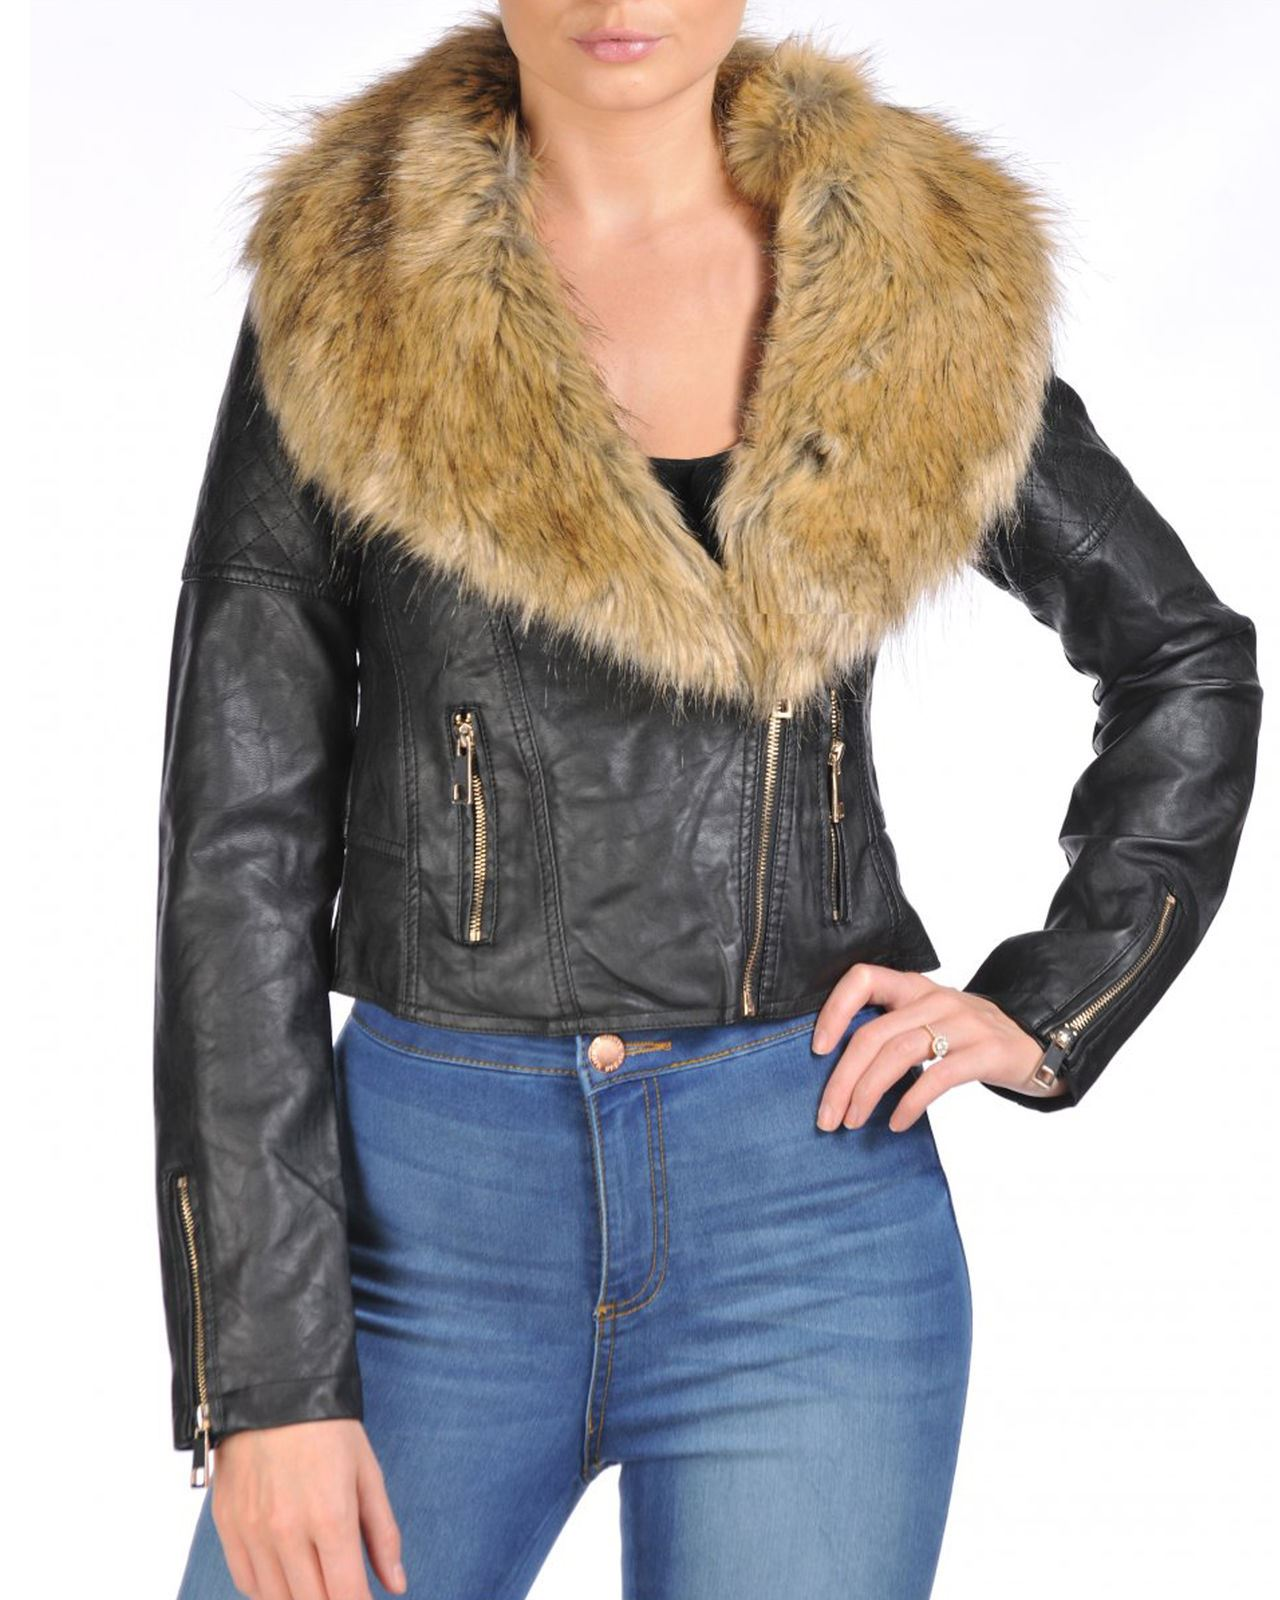 Shop from a variety of leather jackets, biker jackets and bomber jackets. your browser is not supported River Island Petite aviator jacket with faux fur trim in black. $ Miss Selfridge faux leather biker jacket in turquoise Lab Leather Longline Biker Jacket with Faux Fur Internal and Collar. $ AllSaints sarana suede biker.